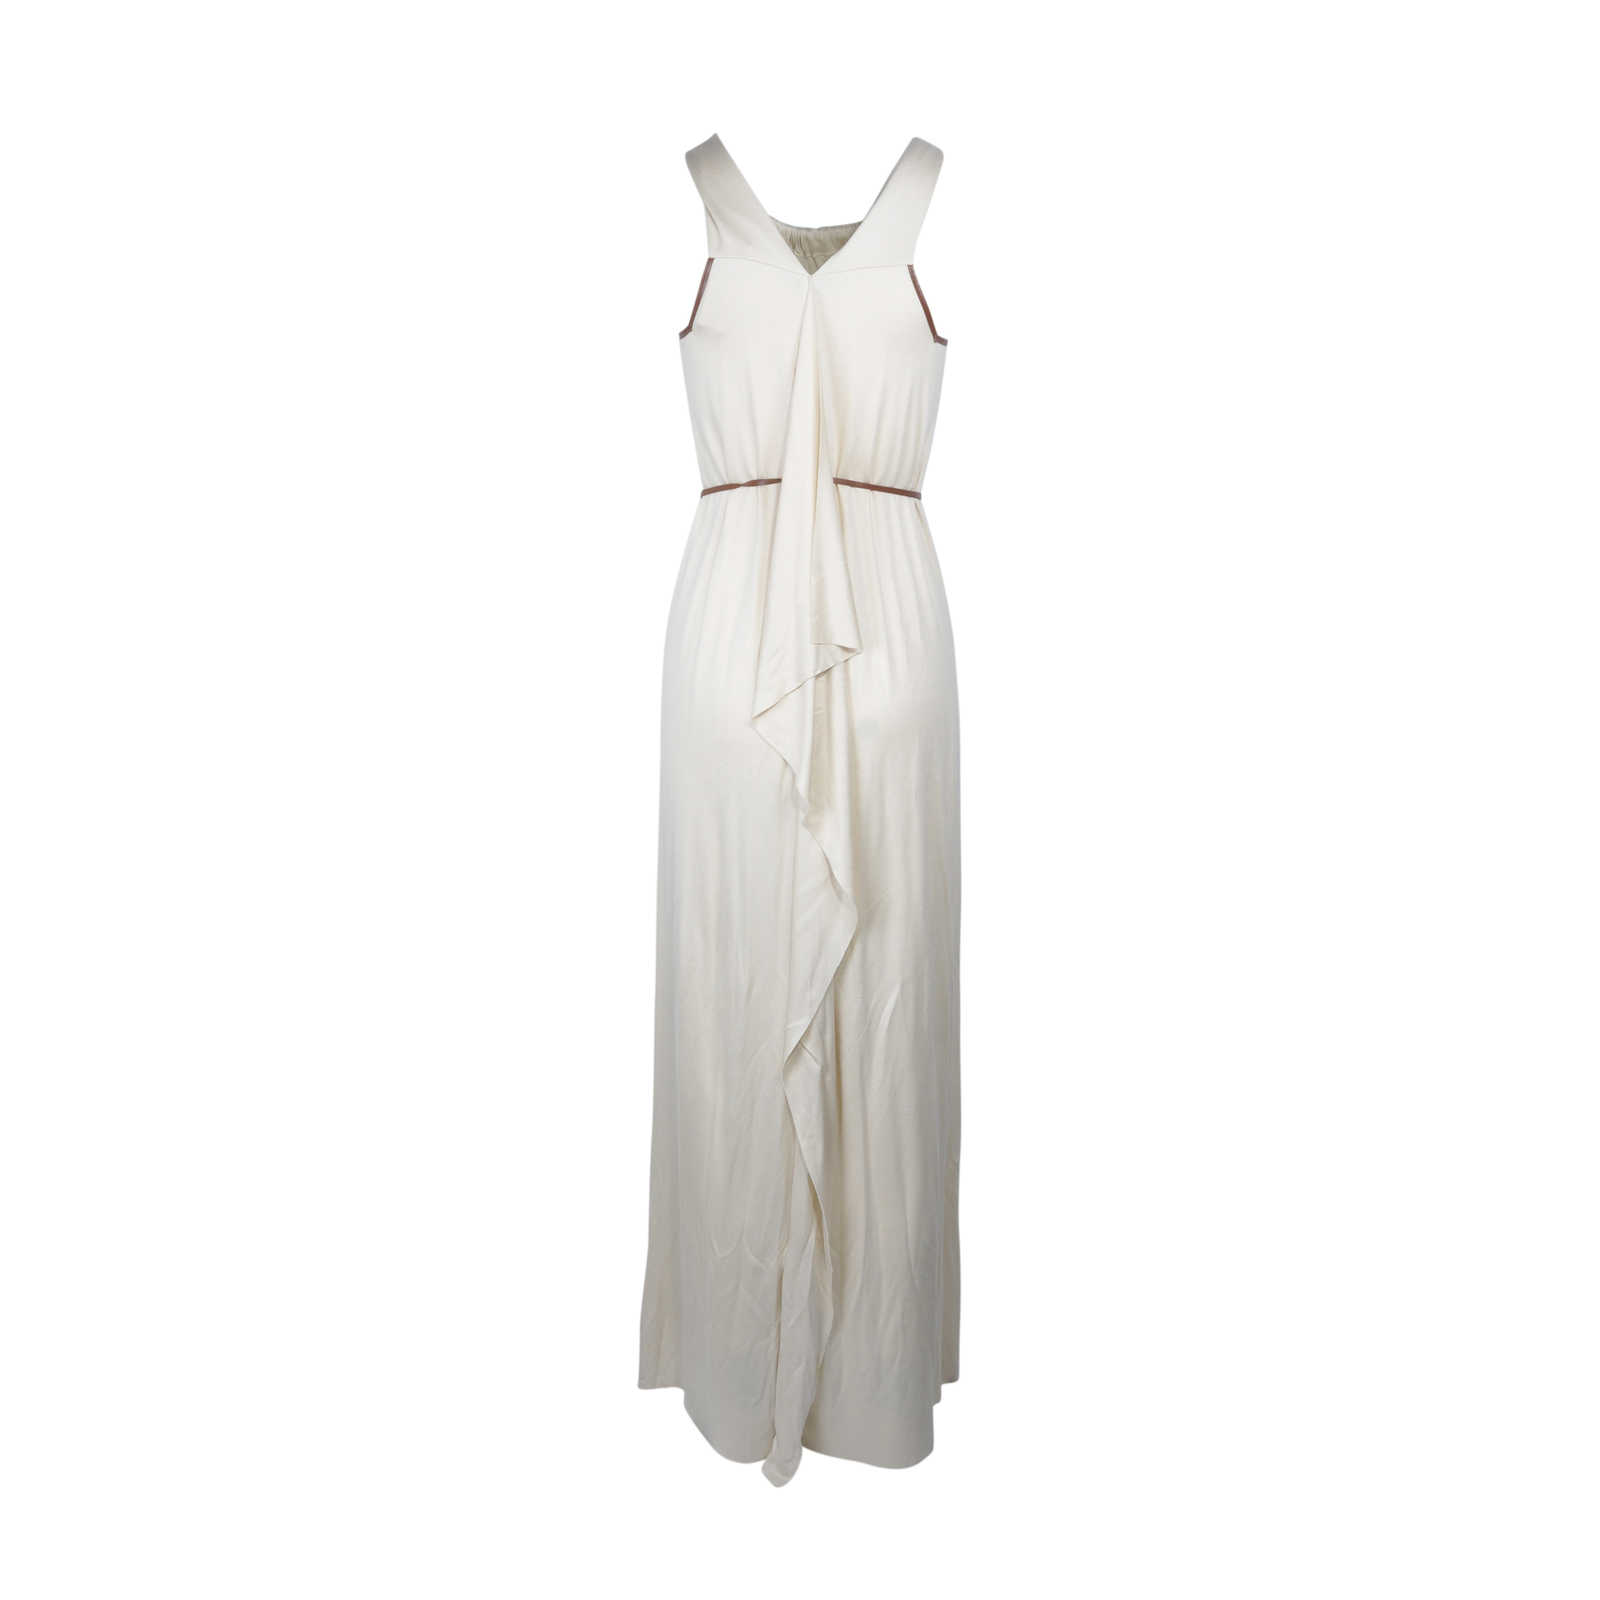 Authentic Pre Owned Rozae Nichols Maxi Dress Pss 074 00021 Thumbnail